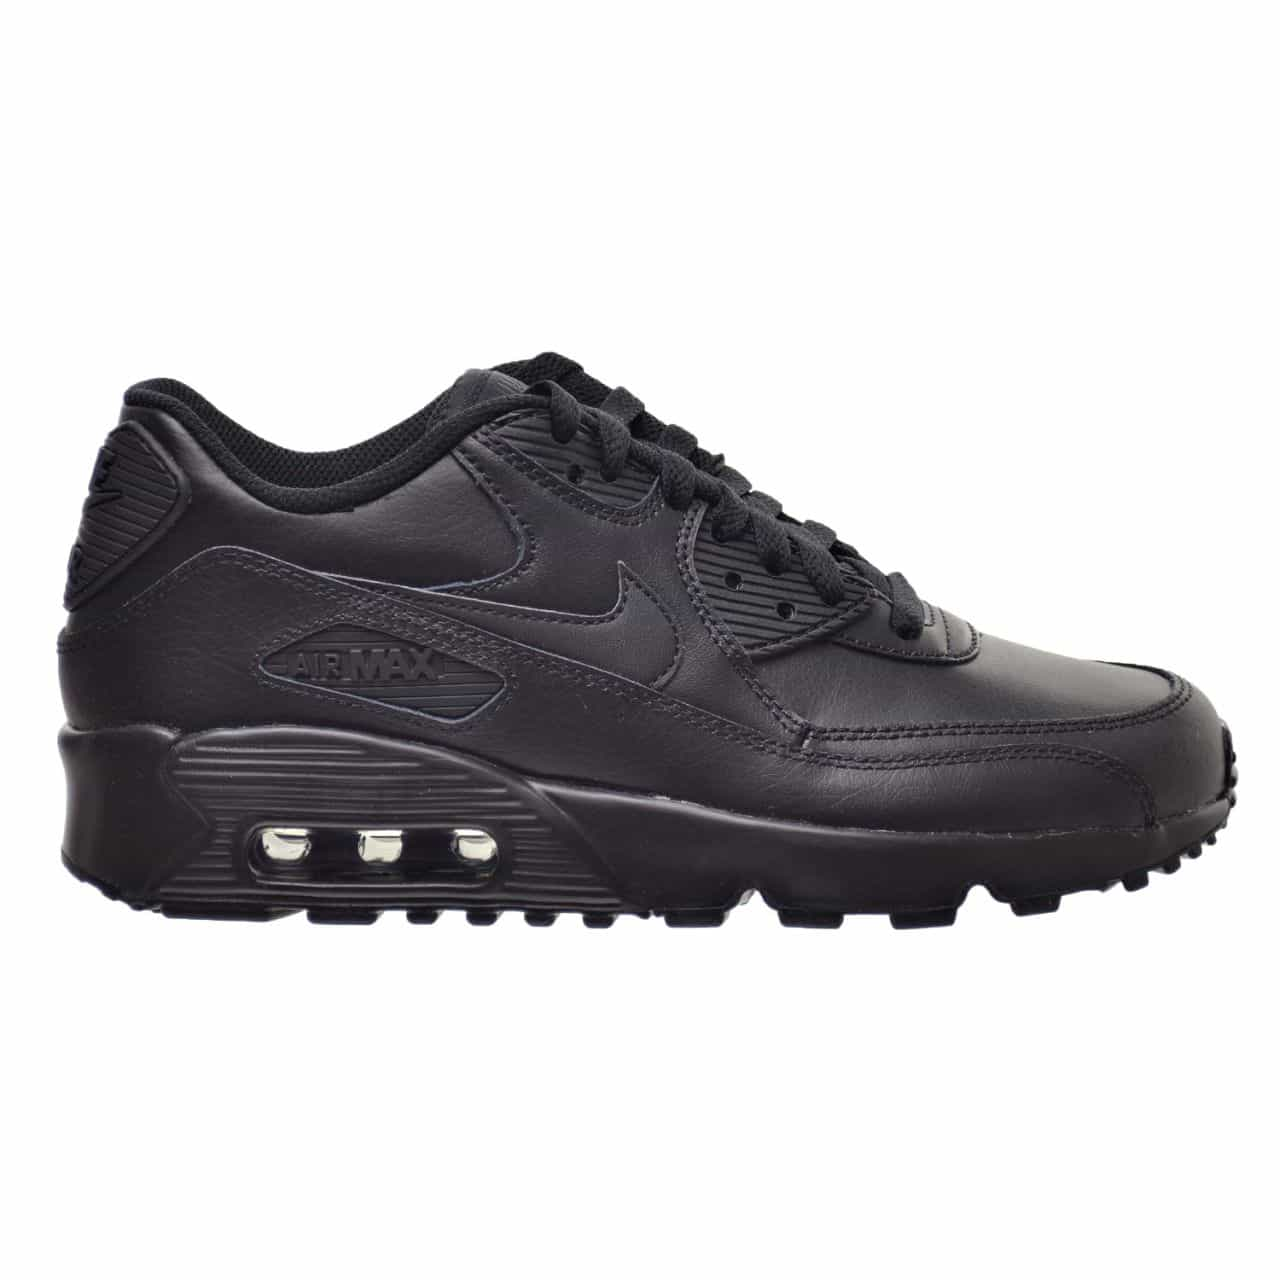 ADIDASI ORIGINALI NIKE AIR MAX 90 LTR (GS) - 833412 001